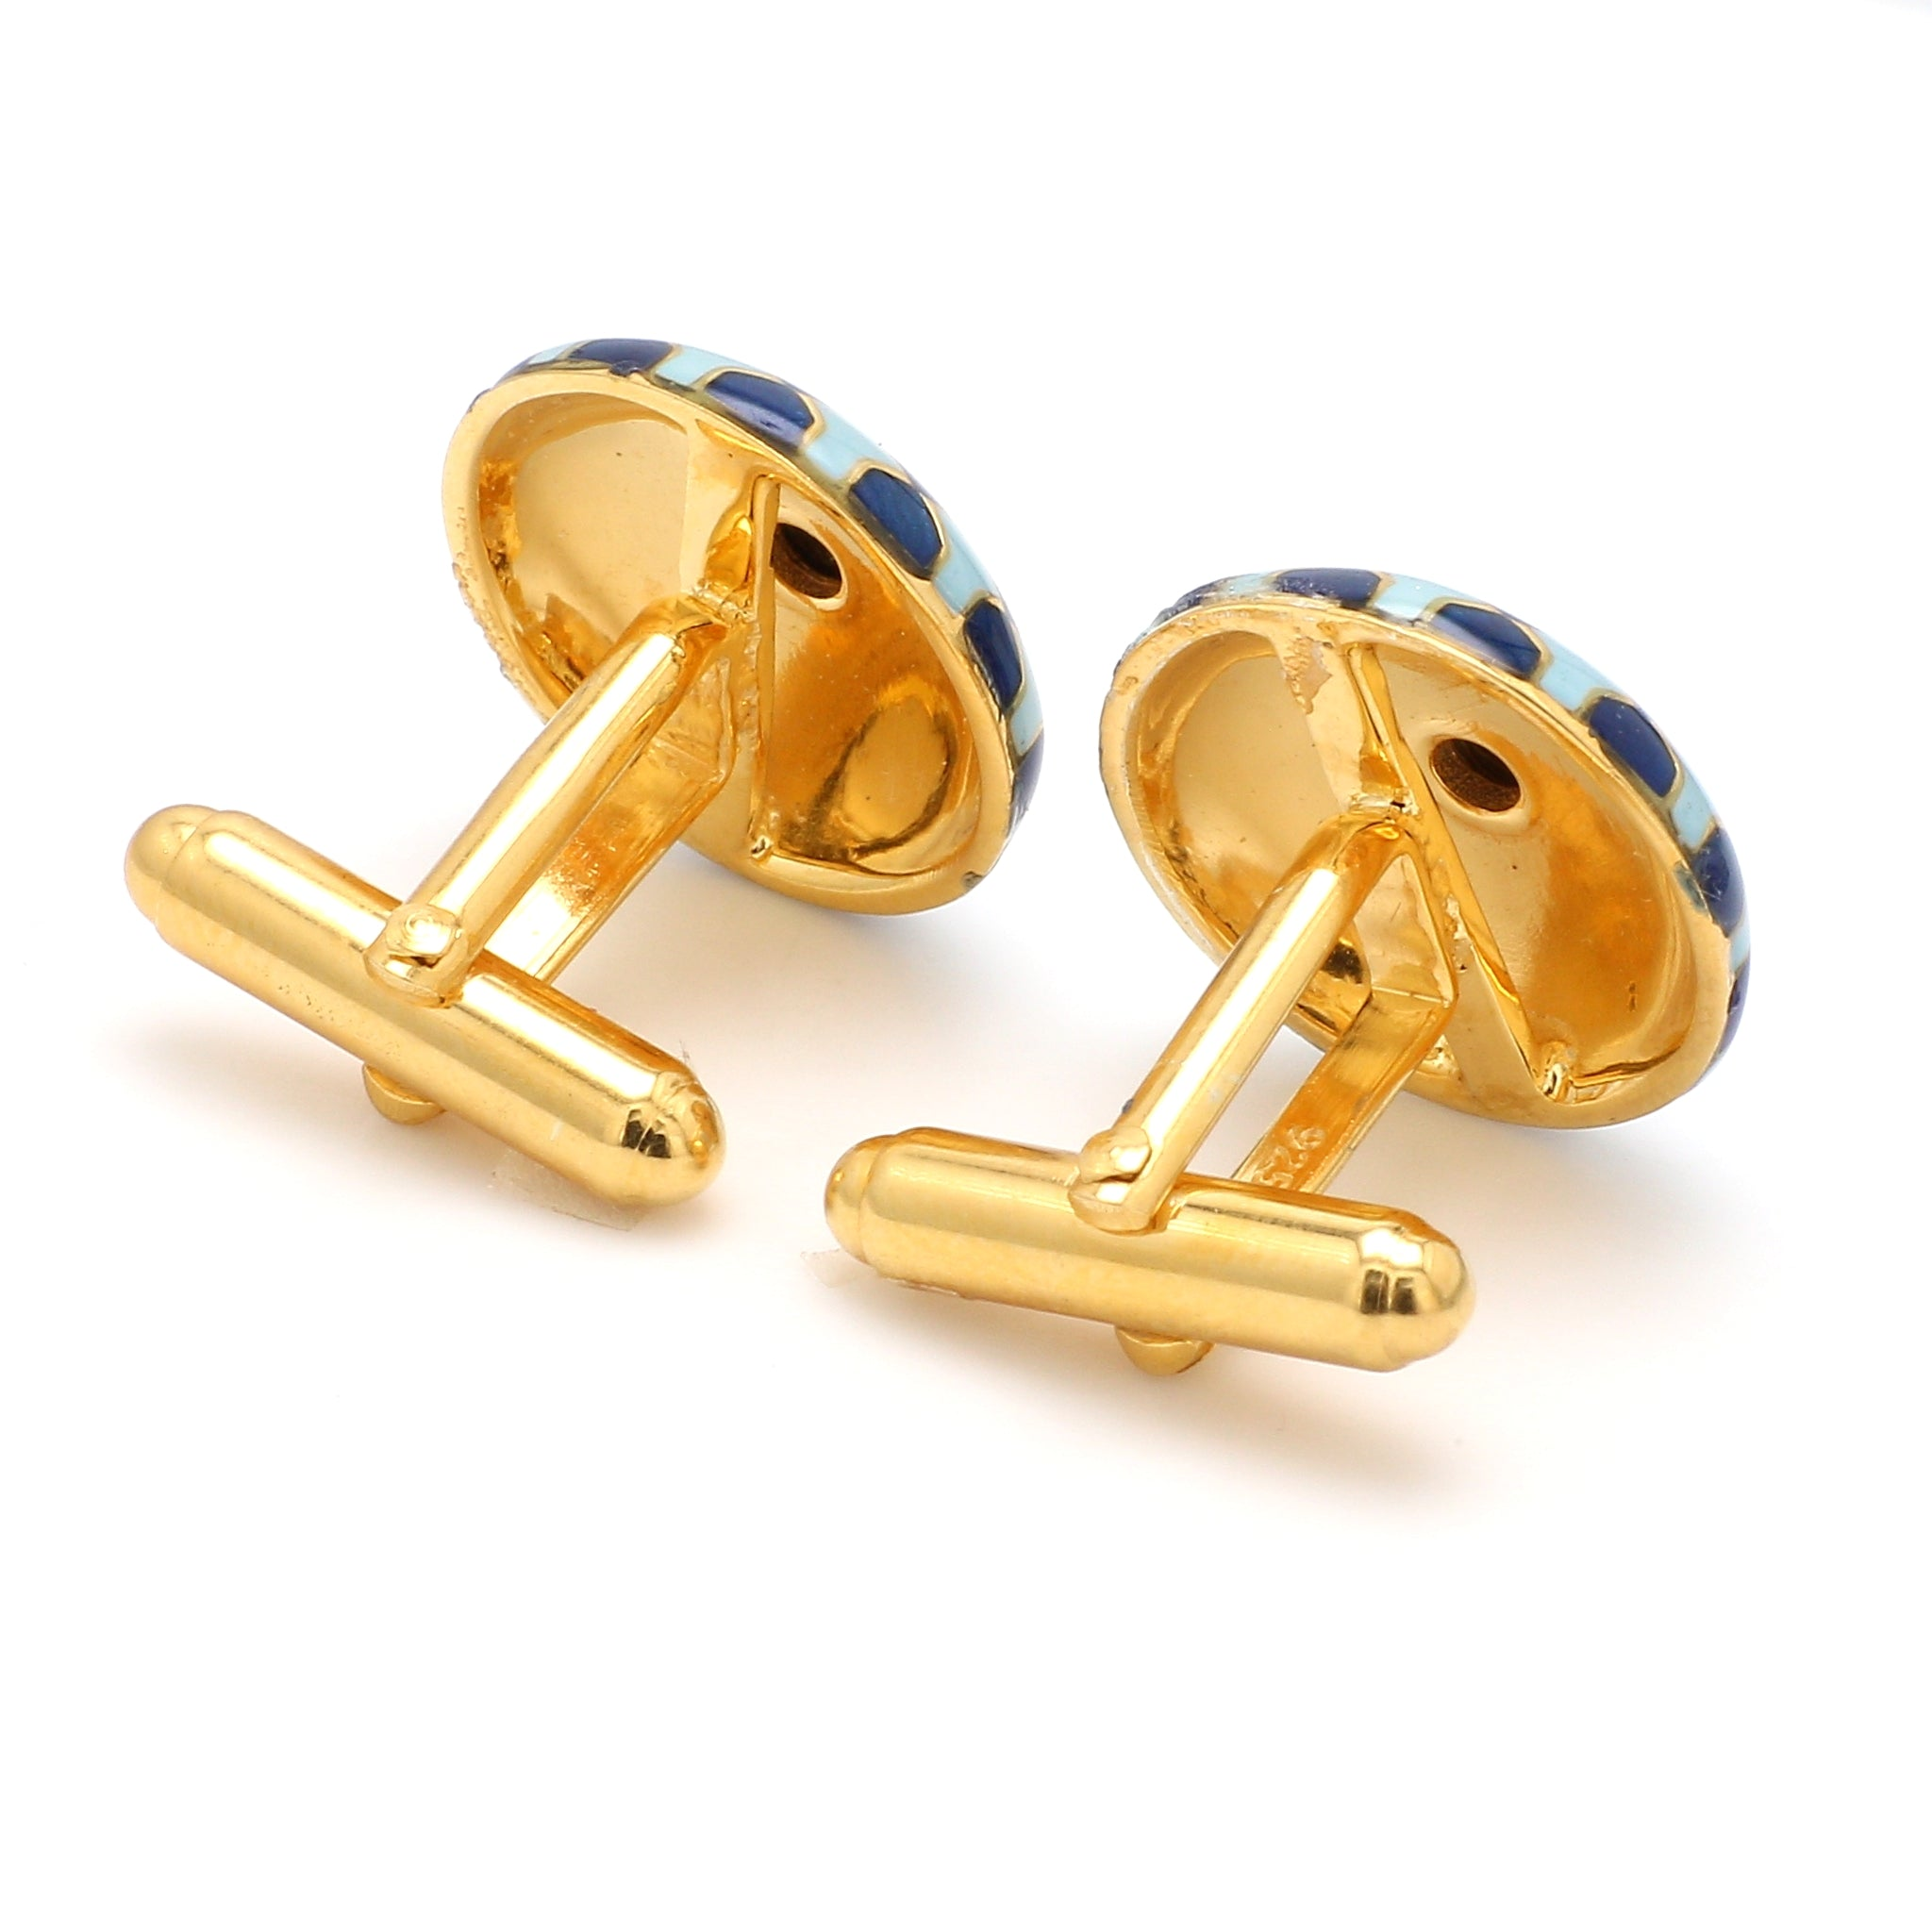 Back View of 925 Silver Cufflinks for Men with Sky Blue, Black & Blue Enamel JL AGC 26